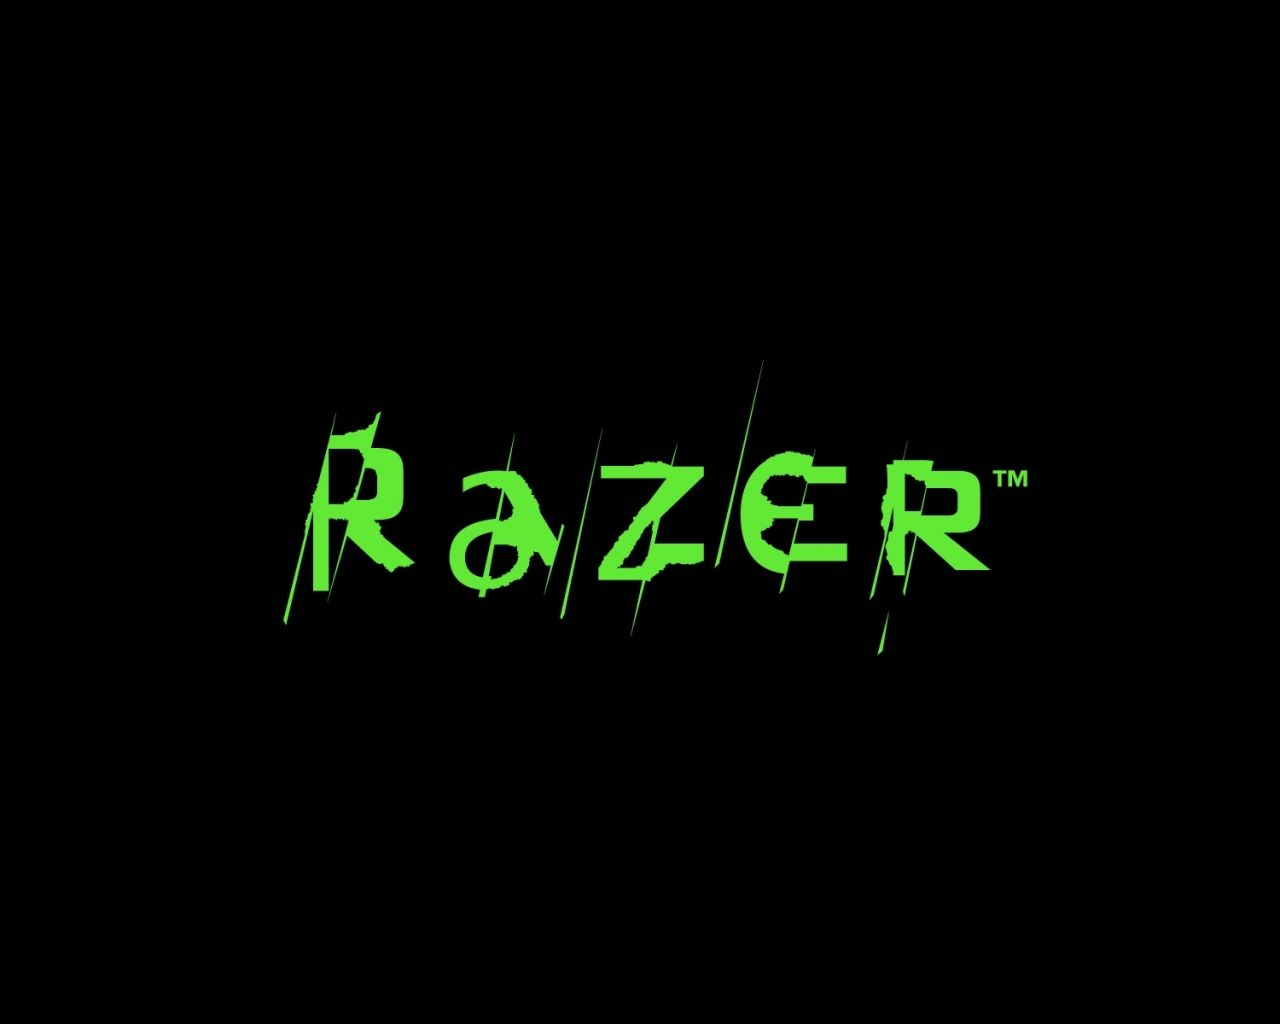 1280x1024 Razer Wallpapers Hd Desktop Backgrounds 1280x1024 Computer Logo Razer High Resolution Wallpapers